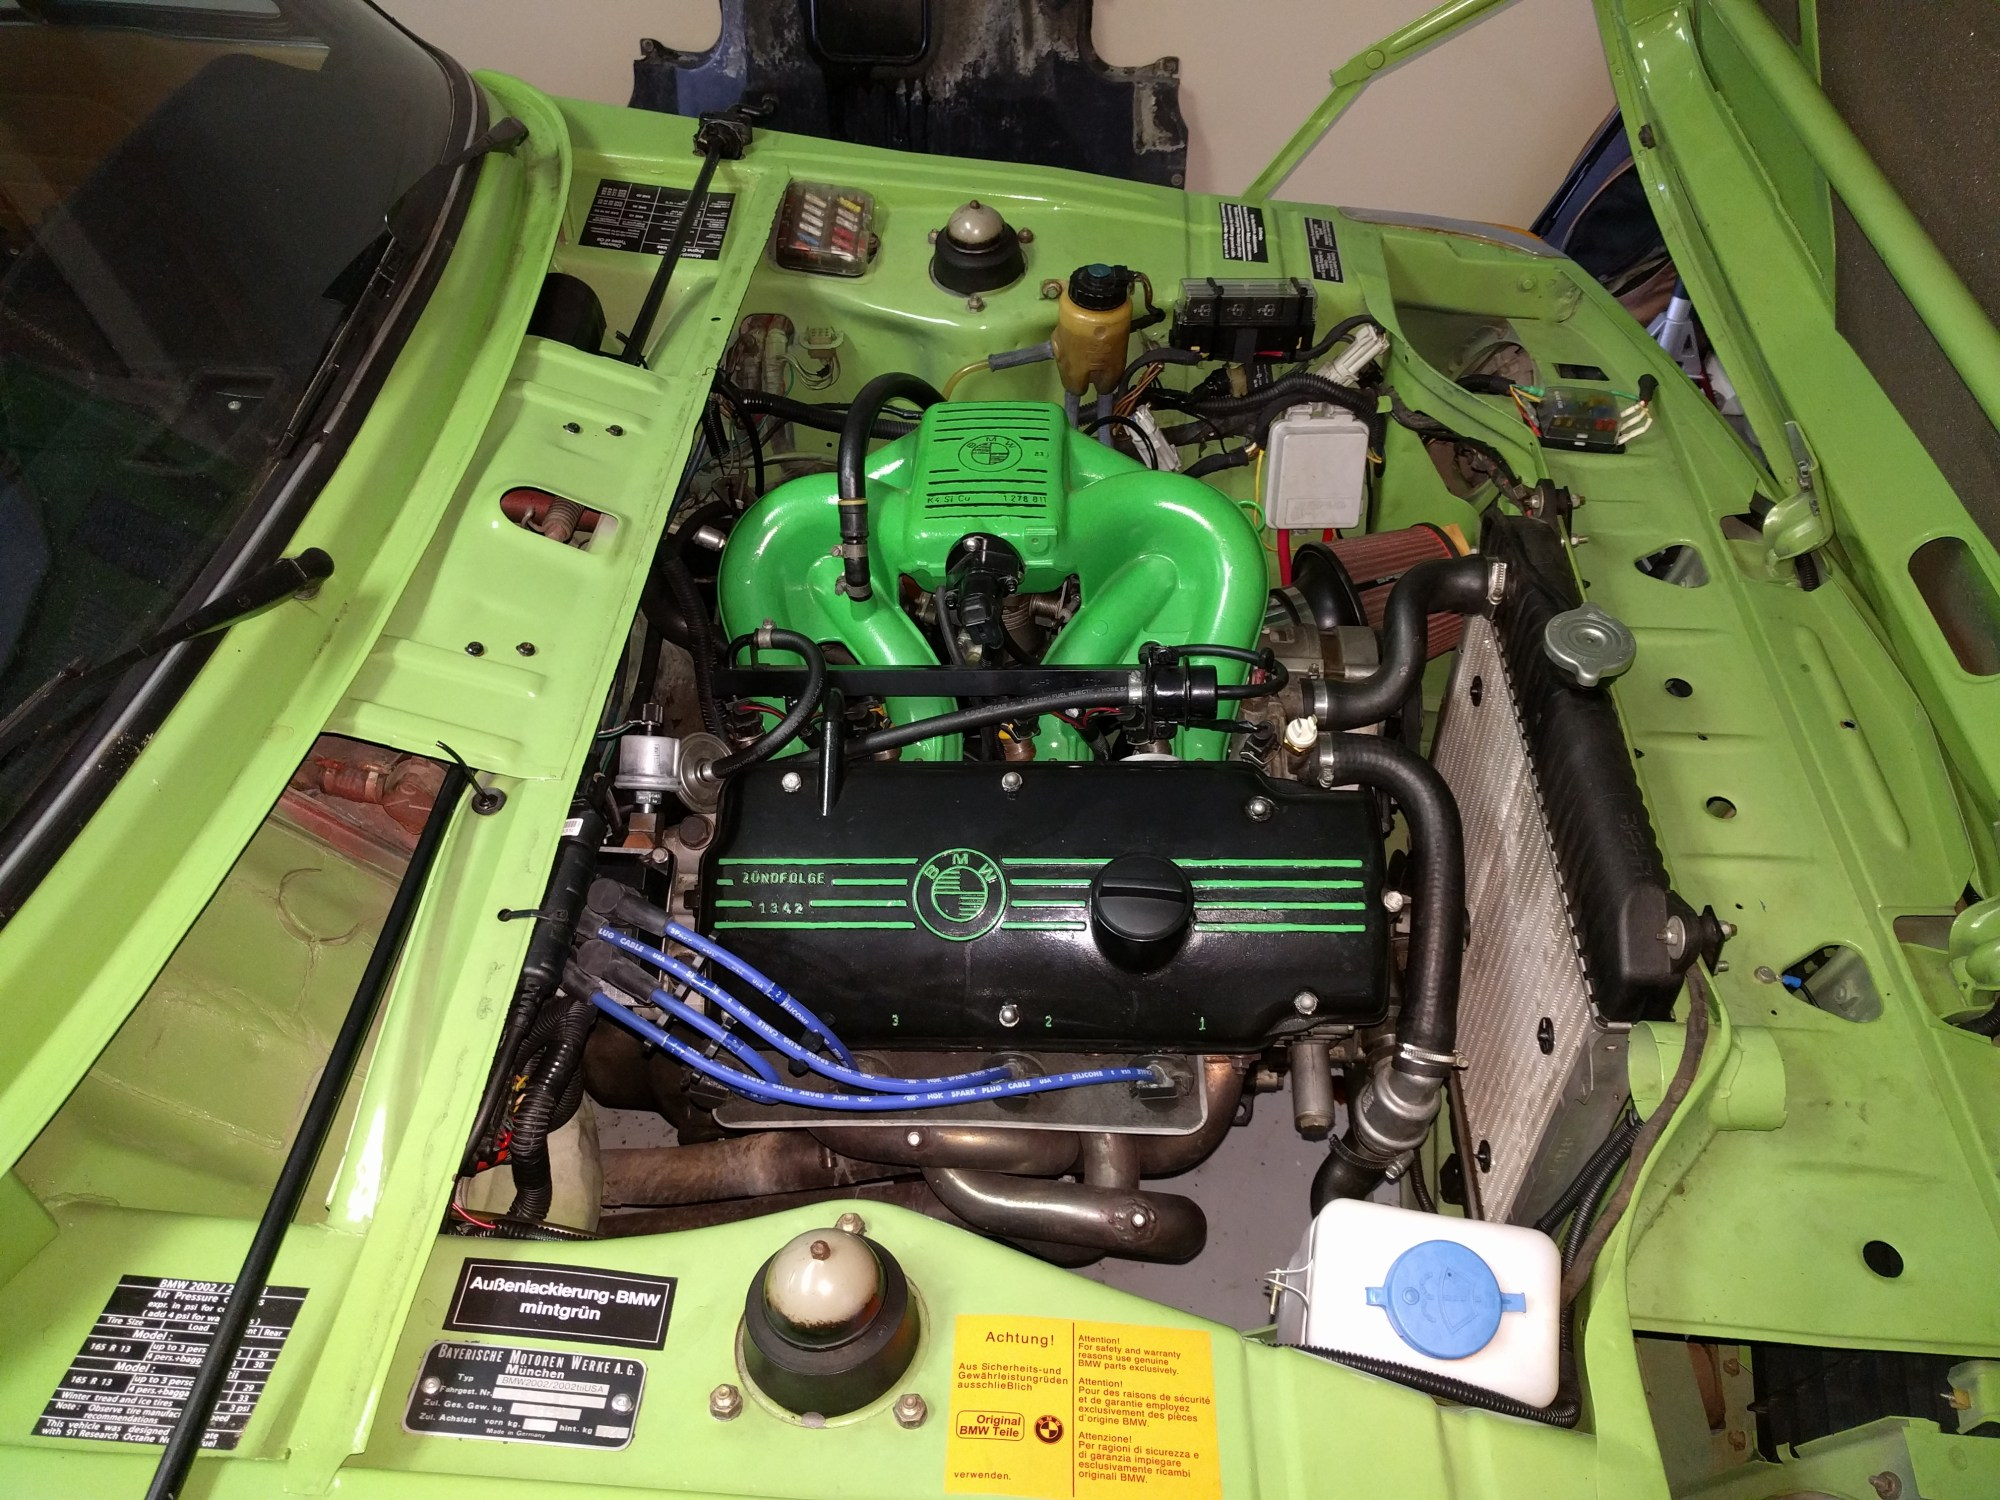 hight resolution of megasquirt efi and edis for the bmw 2002 part 1 engine and drivetrain bmw 2002 faq